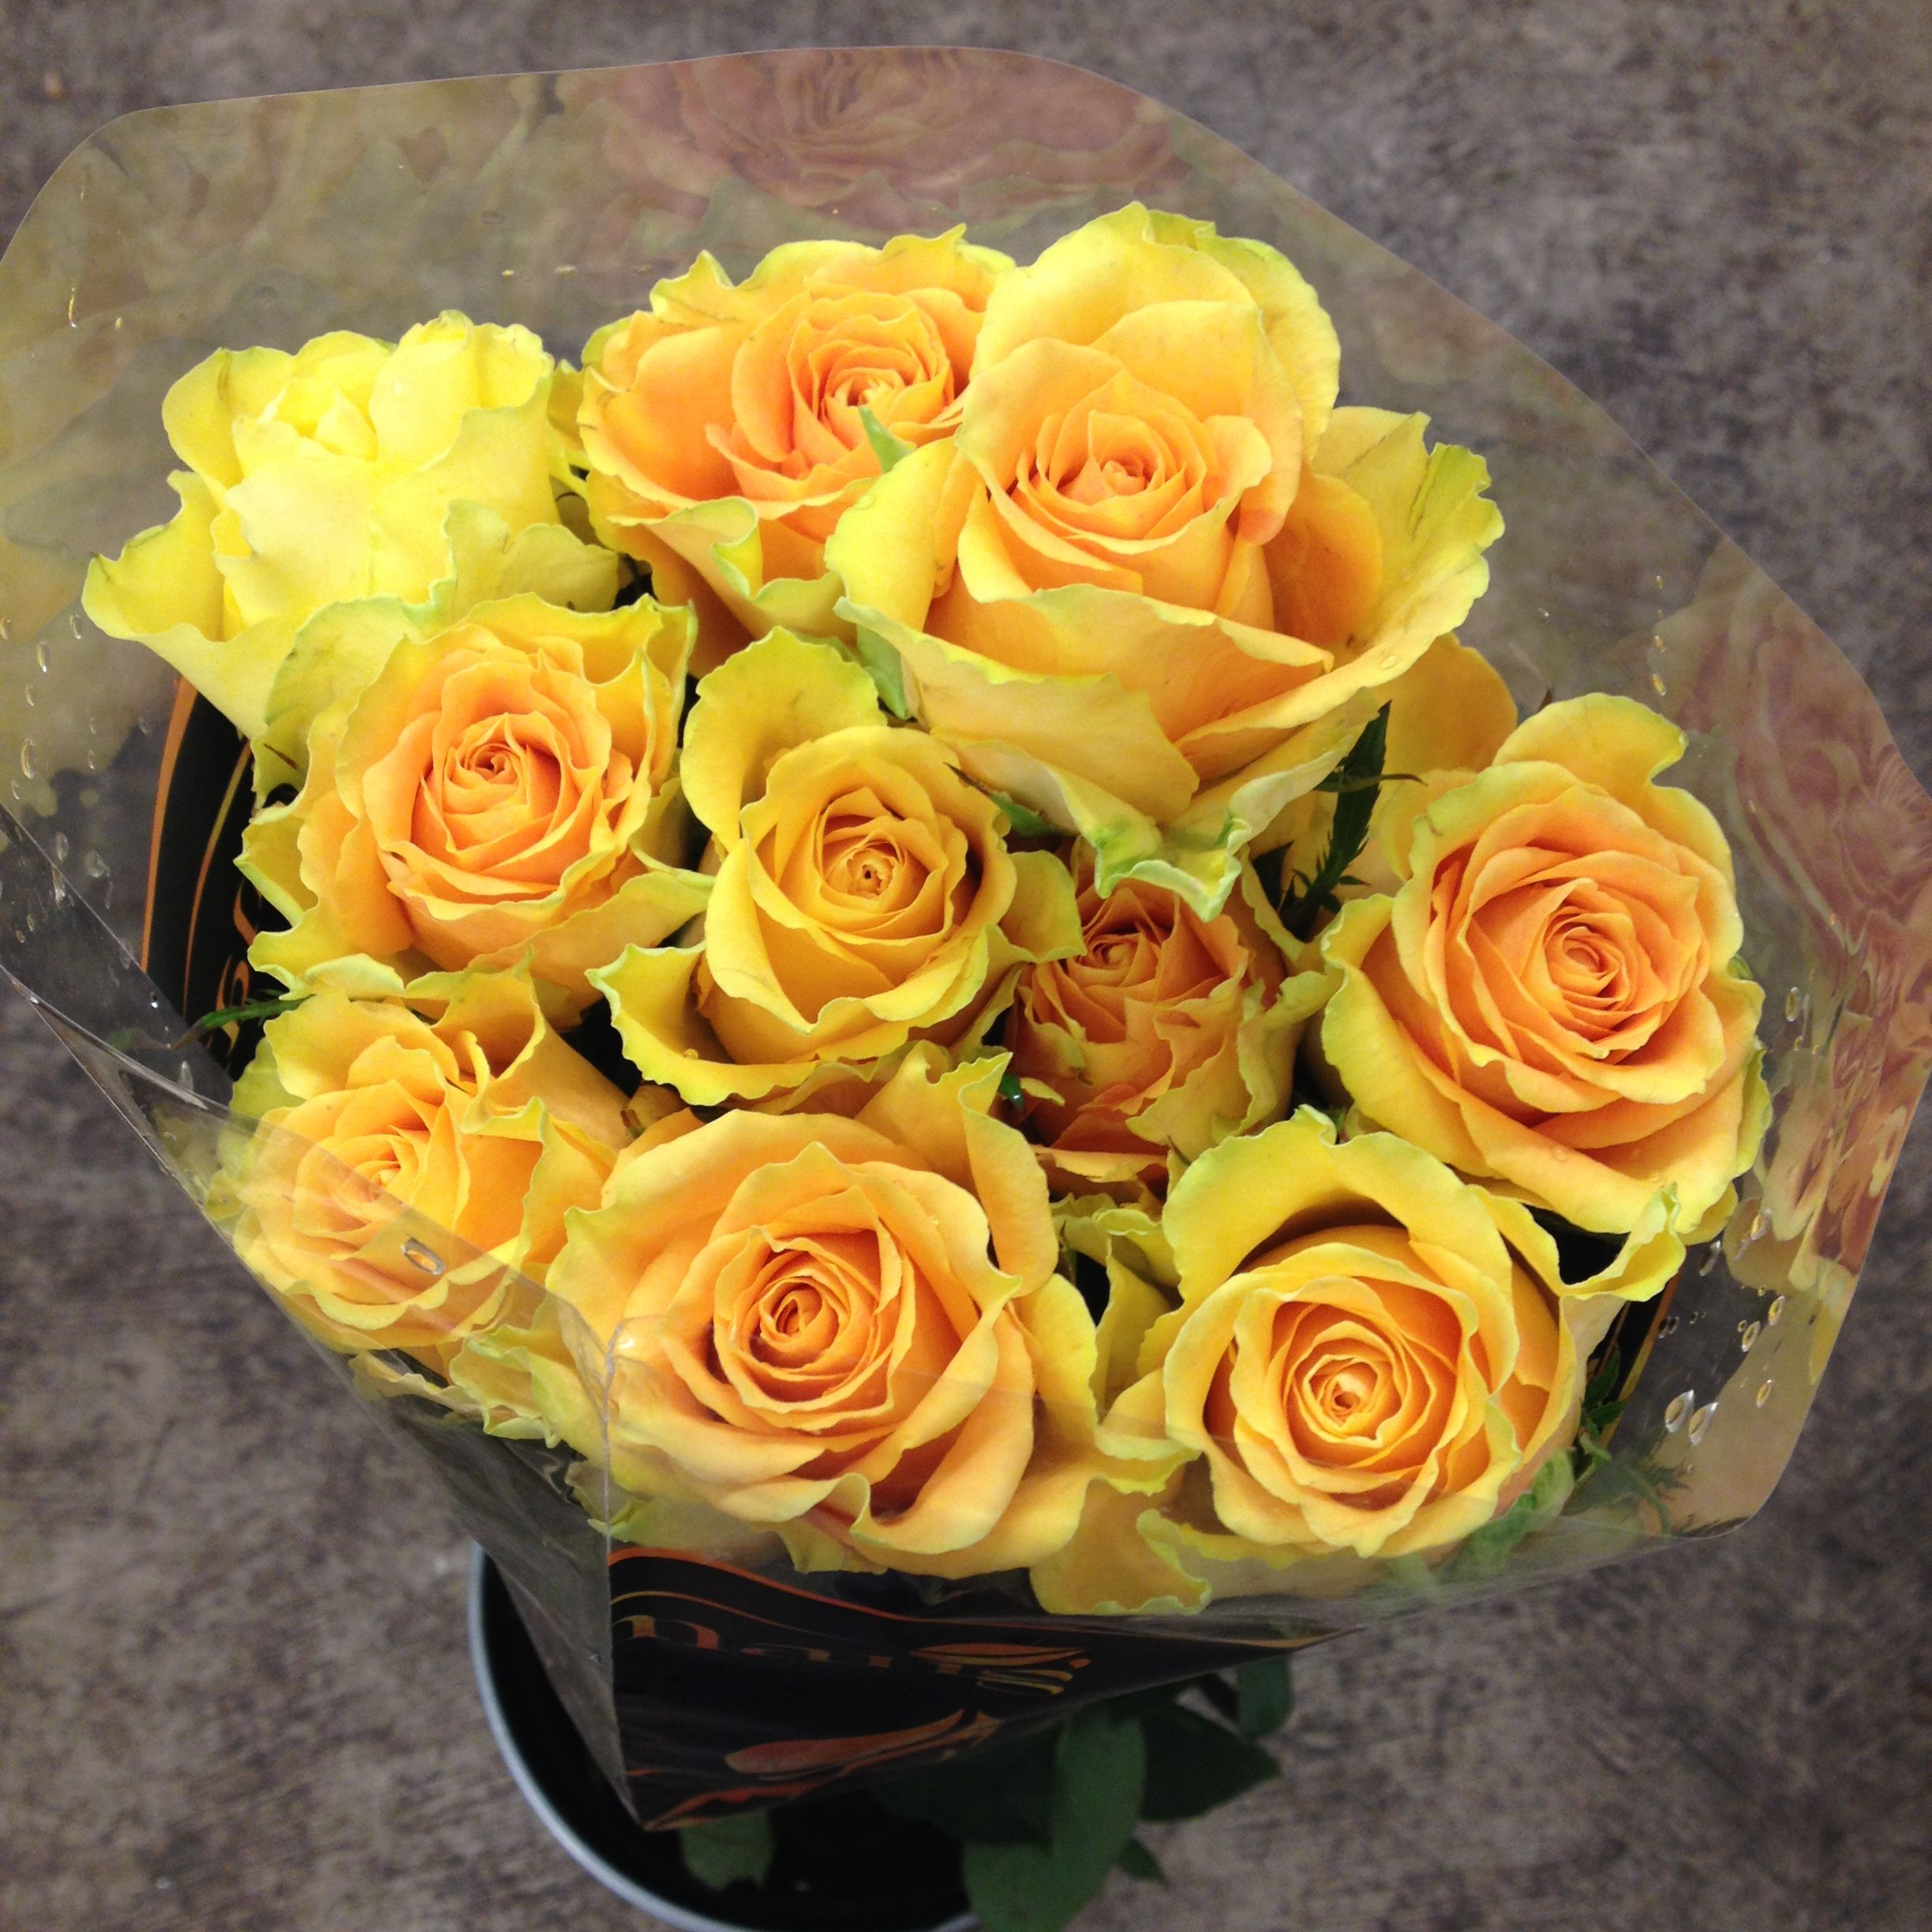 Golden roses called 'Golden Ambition' Sold in bunches of